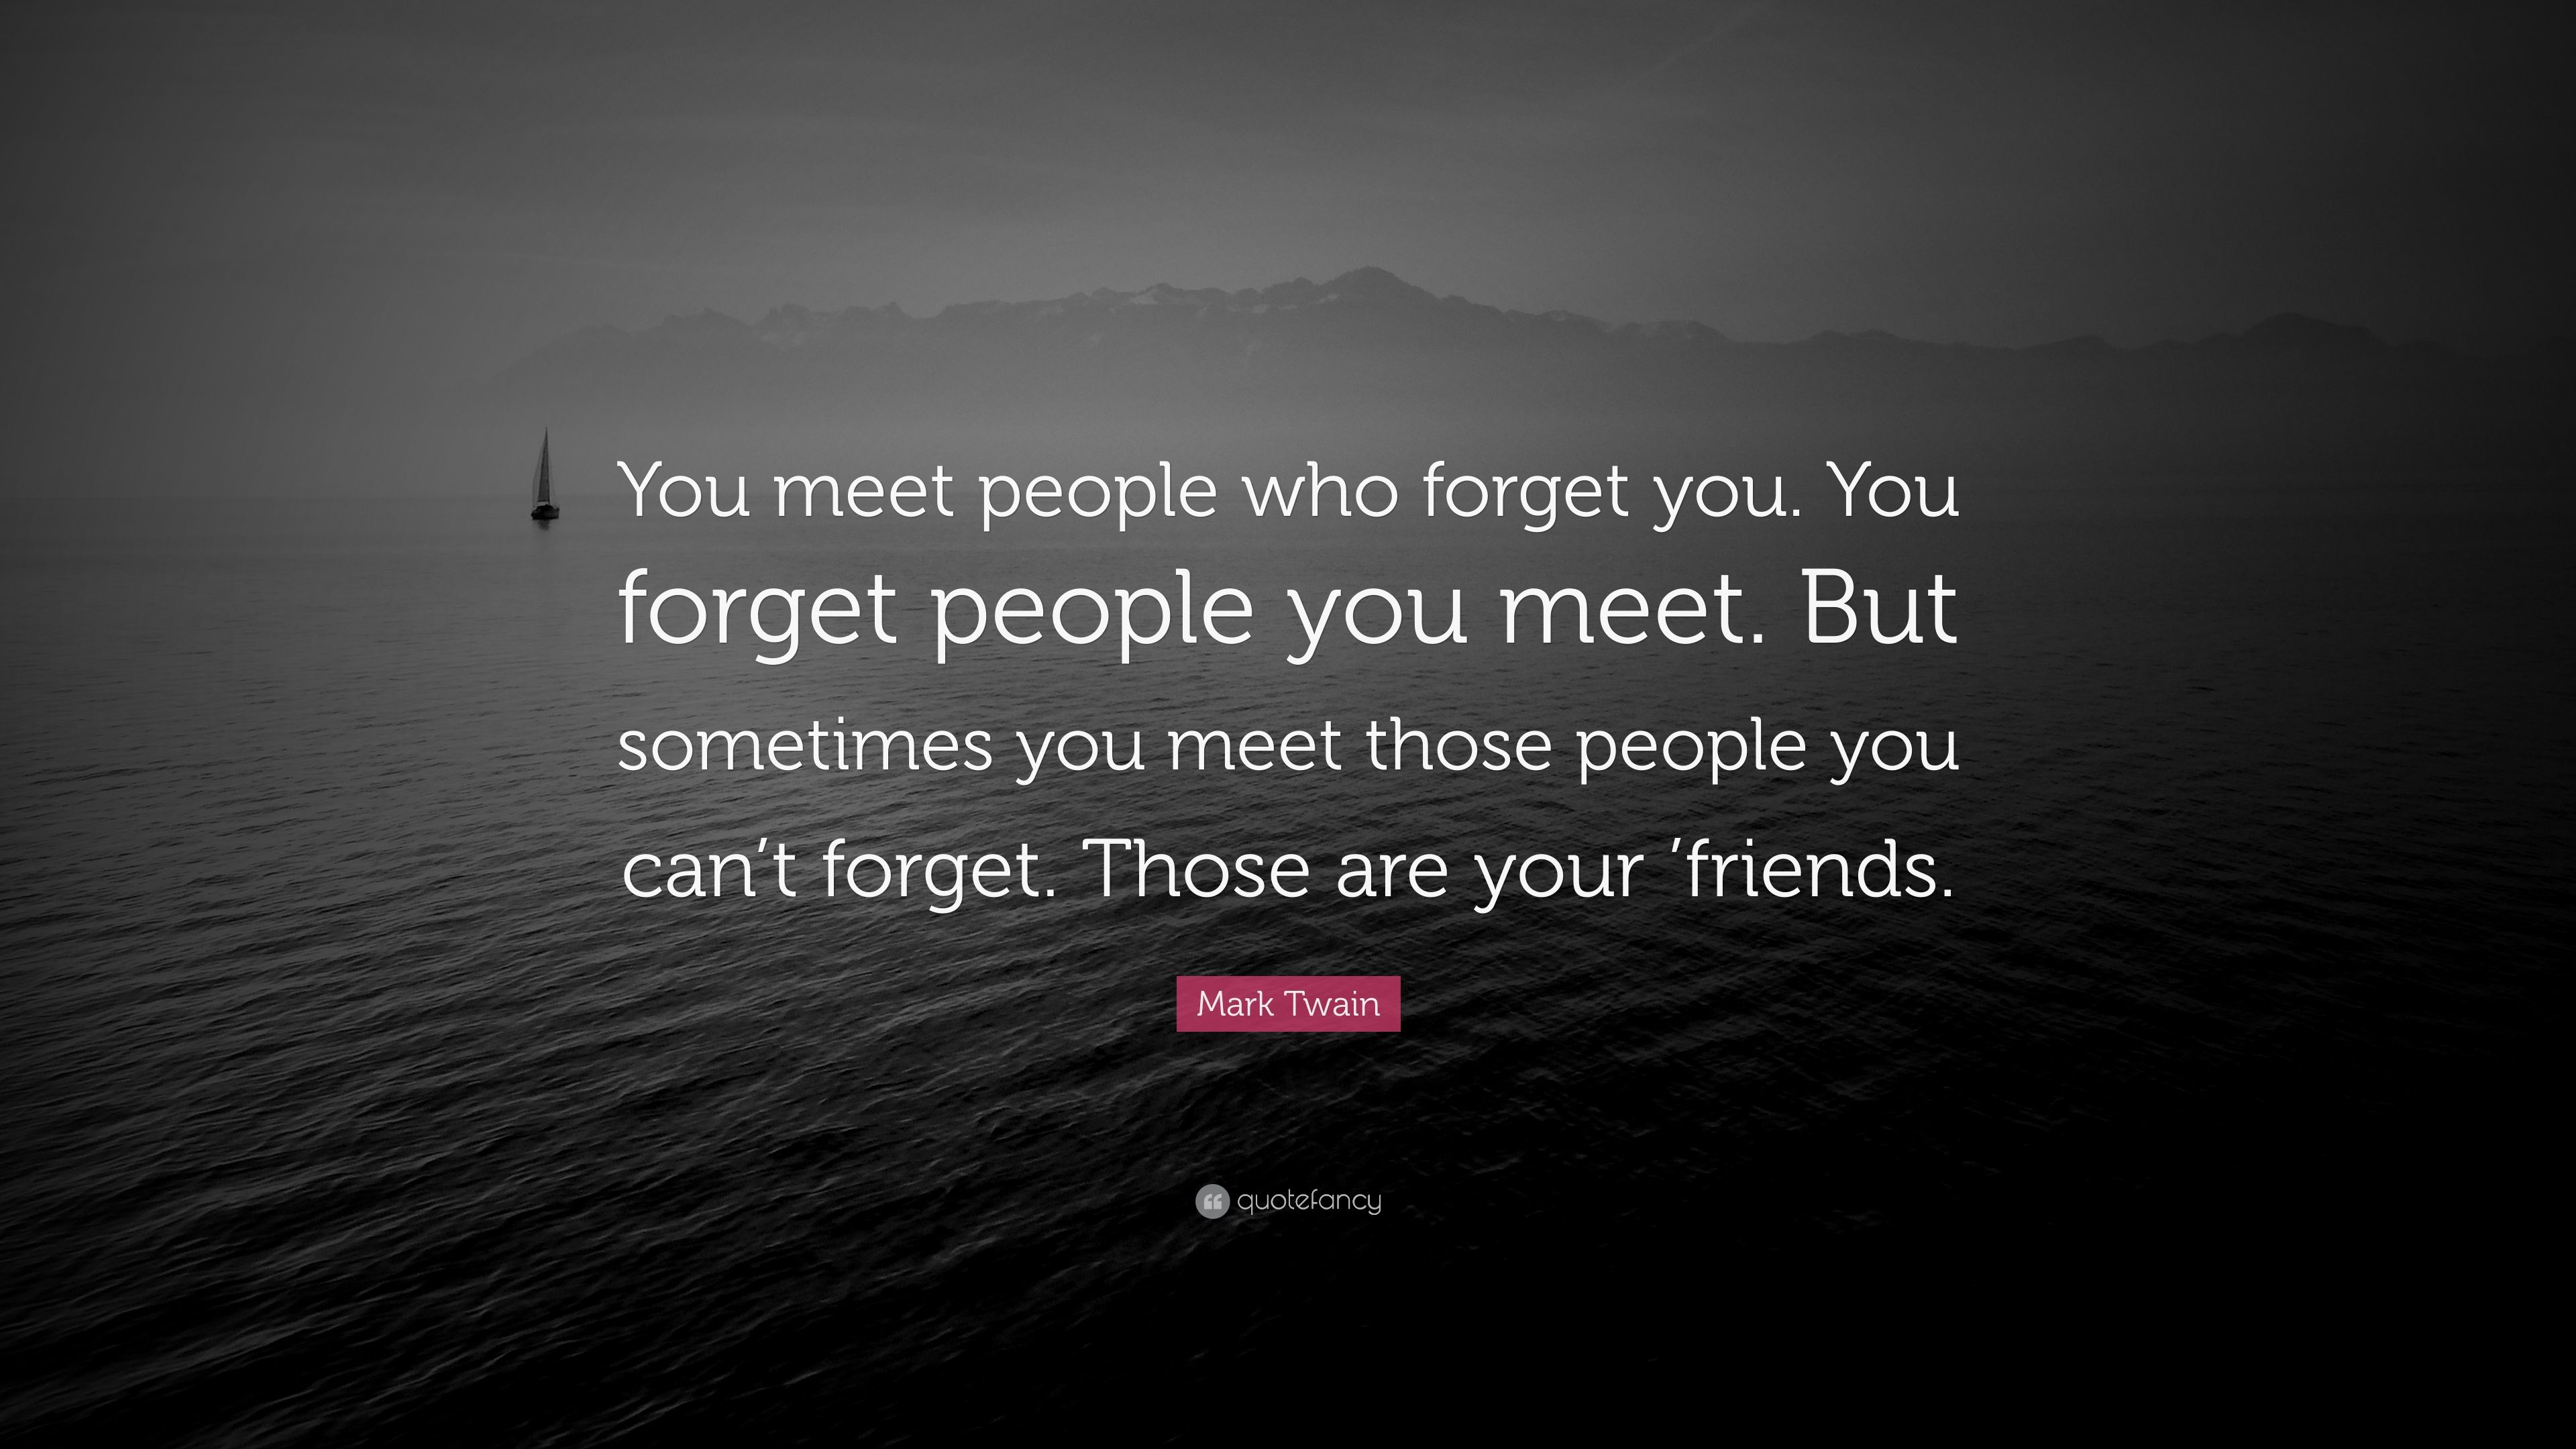 Mark Twain Quote You Meet People Who Forget You You Forget People